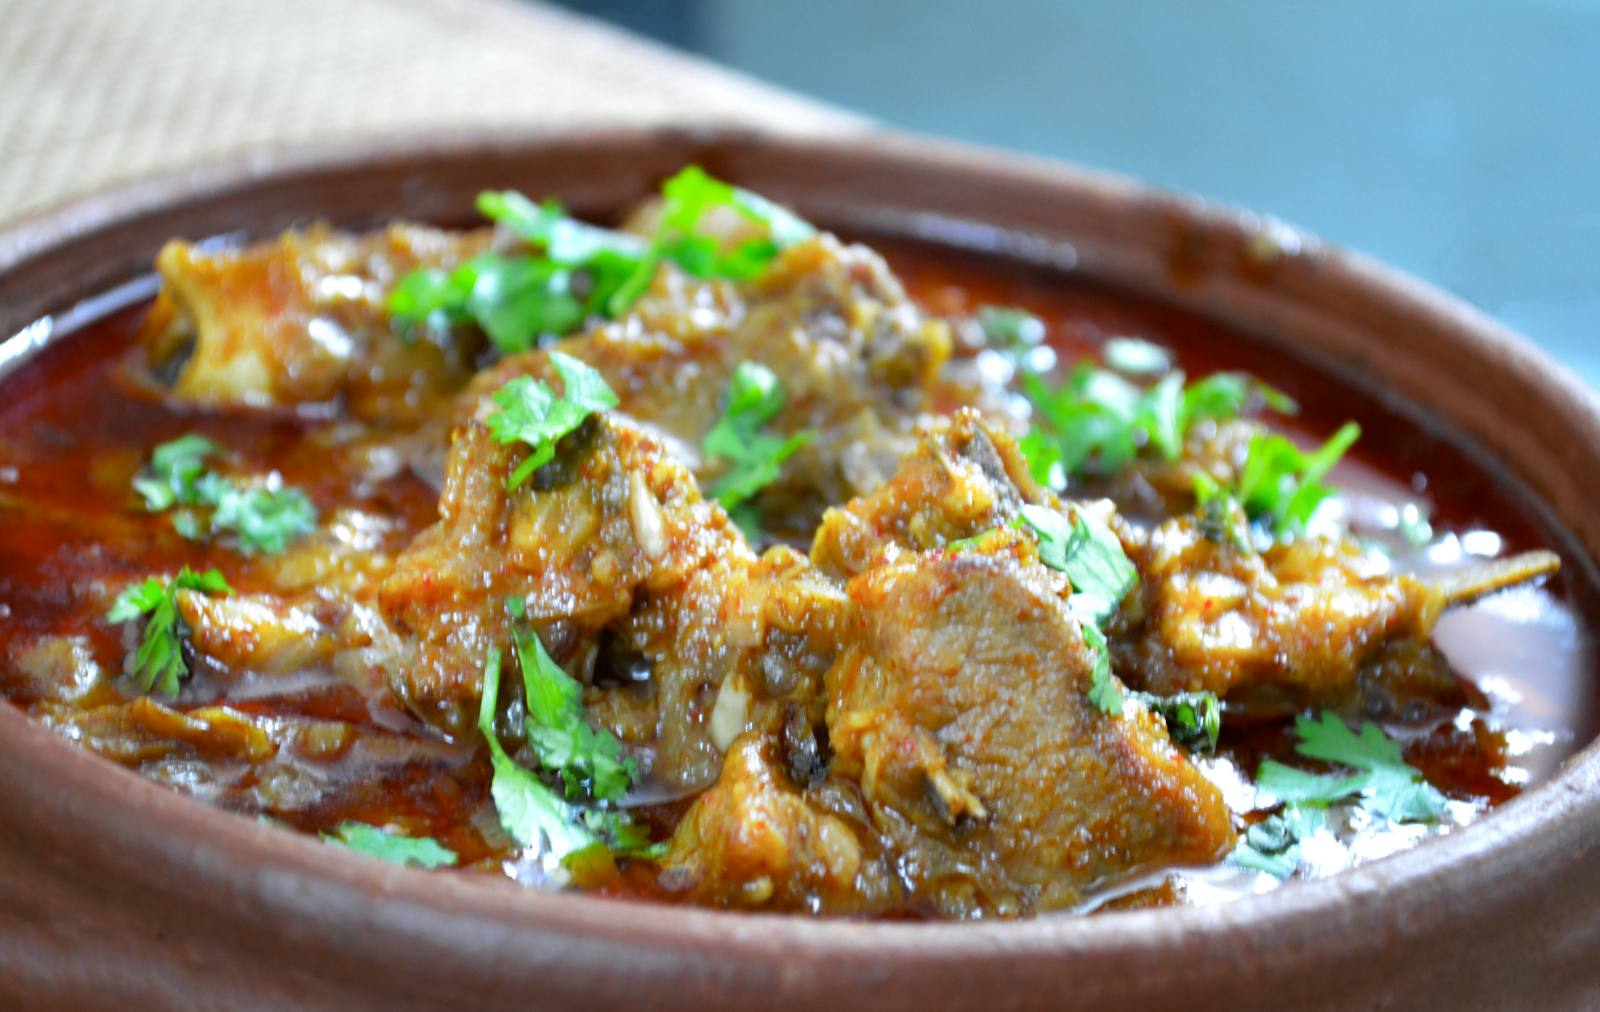 Dhaba mutton recipe spicy mutton gravy by archanas kitchen dhaba mutton recipe spicy mutton gravy forumfinder Image collections